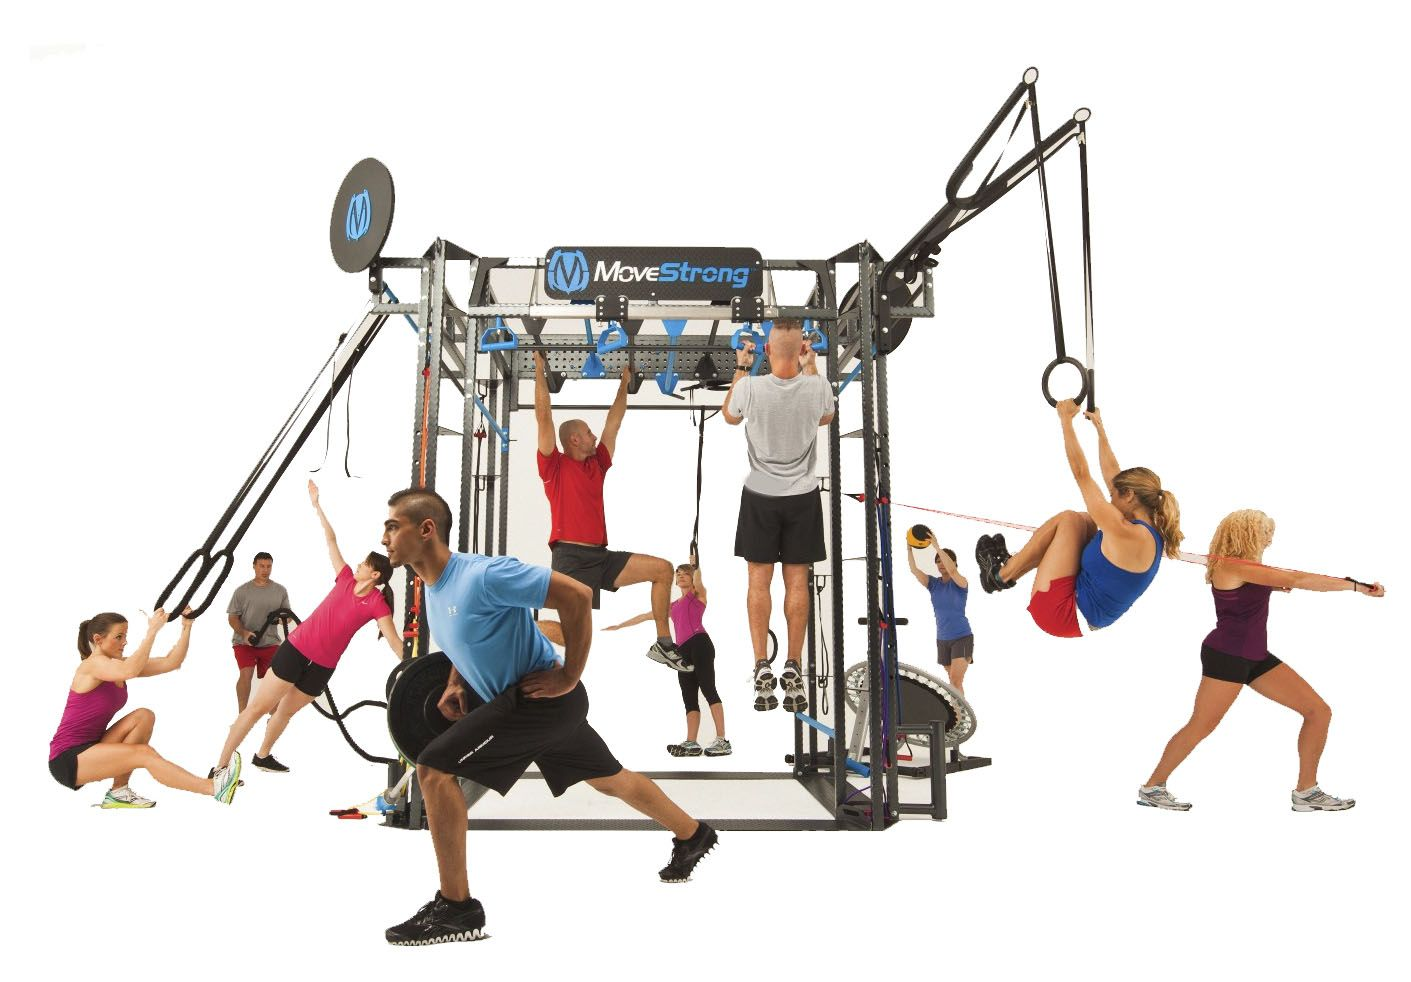 All In One Fitness Training Lab, 2317 Santa Clara Ave * Premier training destination and gym facility.